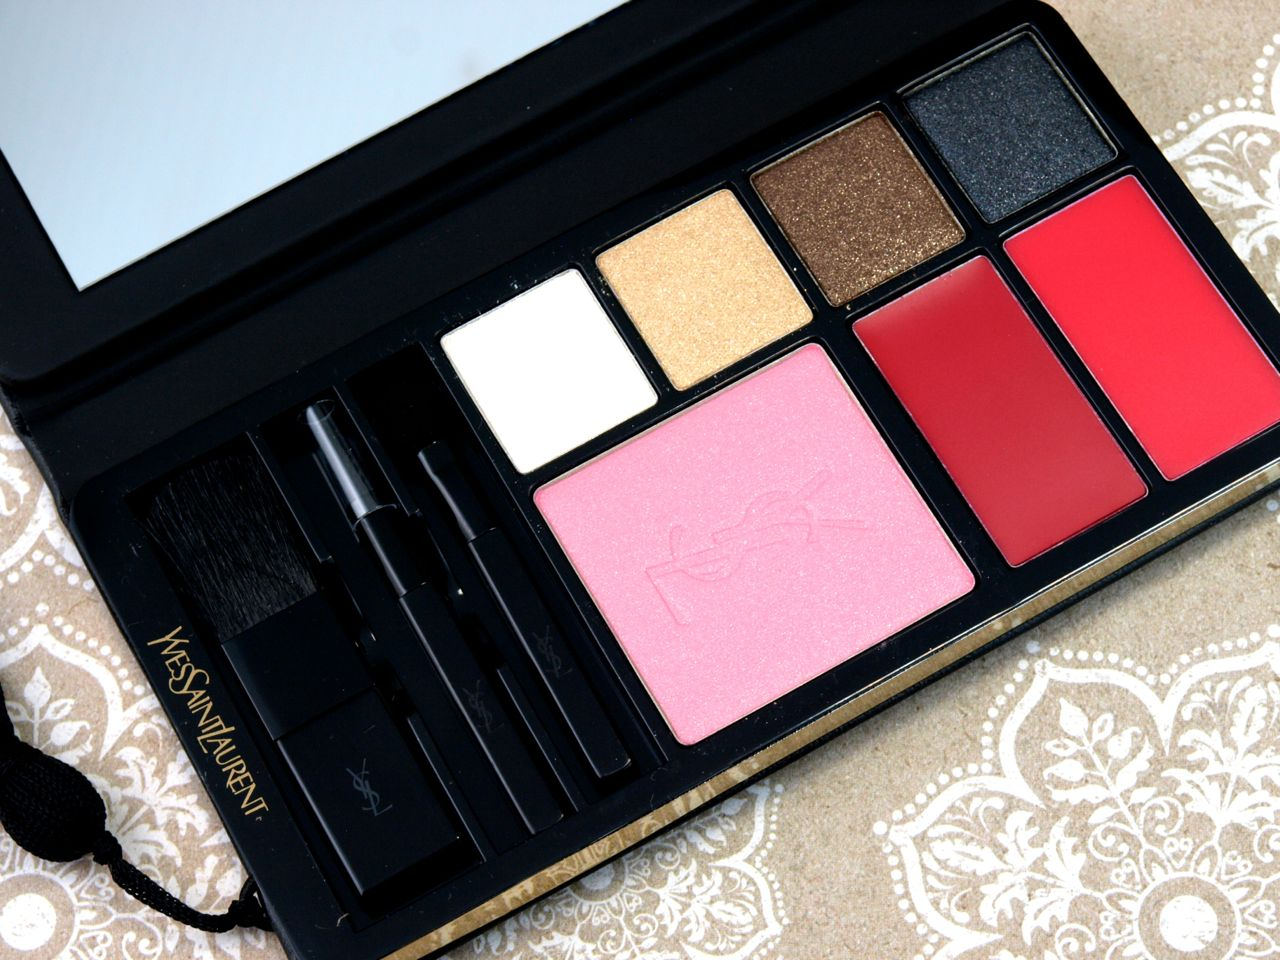 Yves Saint Laurent YSL Holiday 2014 Wildly Gold Complete Makeup Palette: Review and Swatches